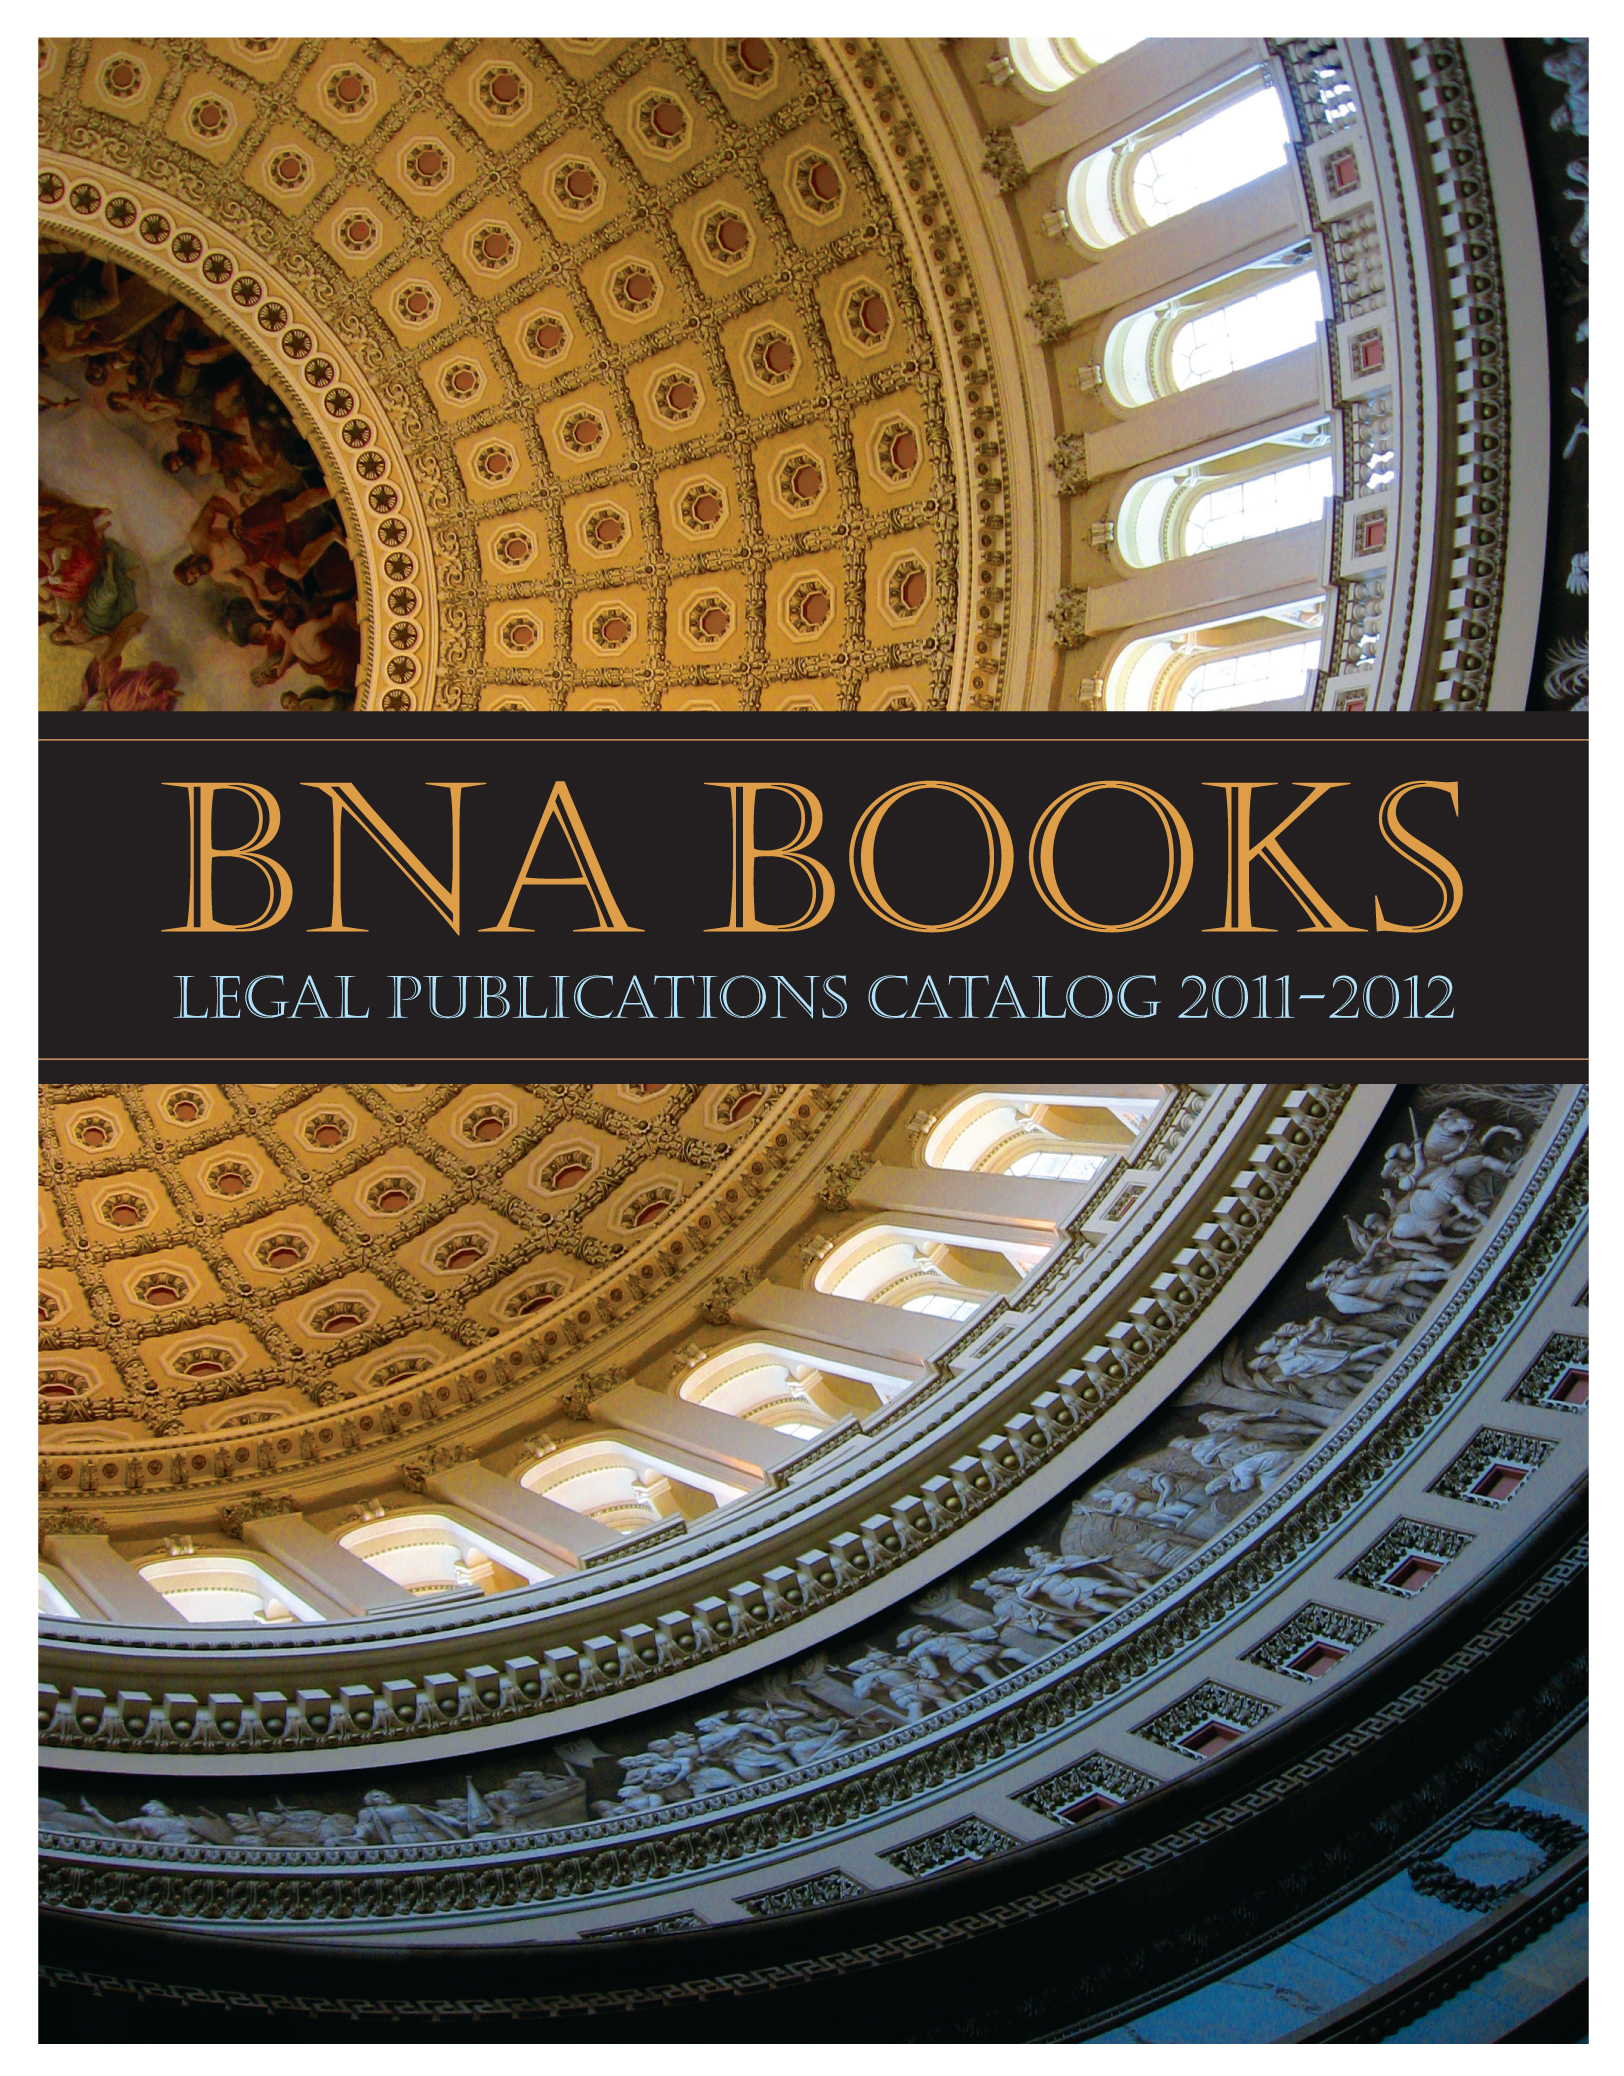 BNA Books Catalogue Cover